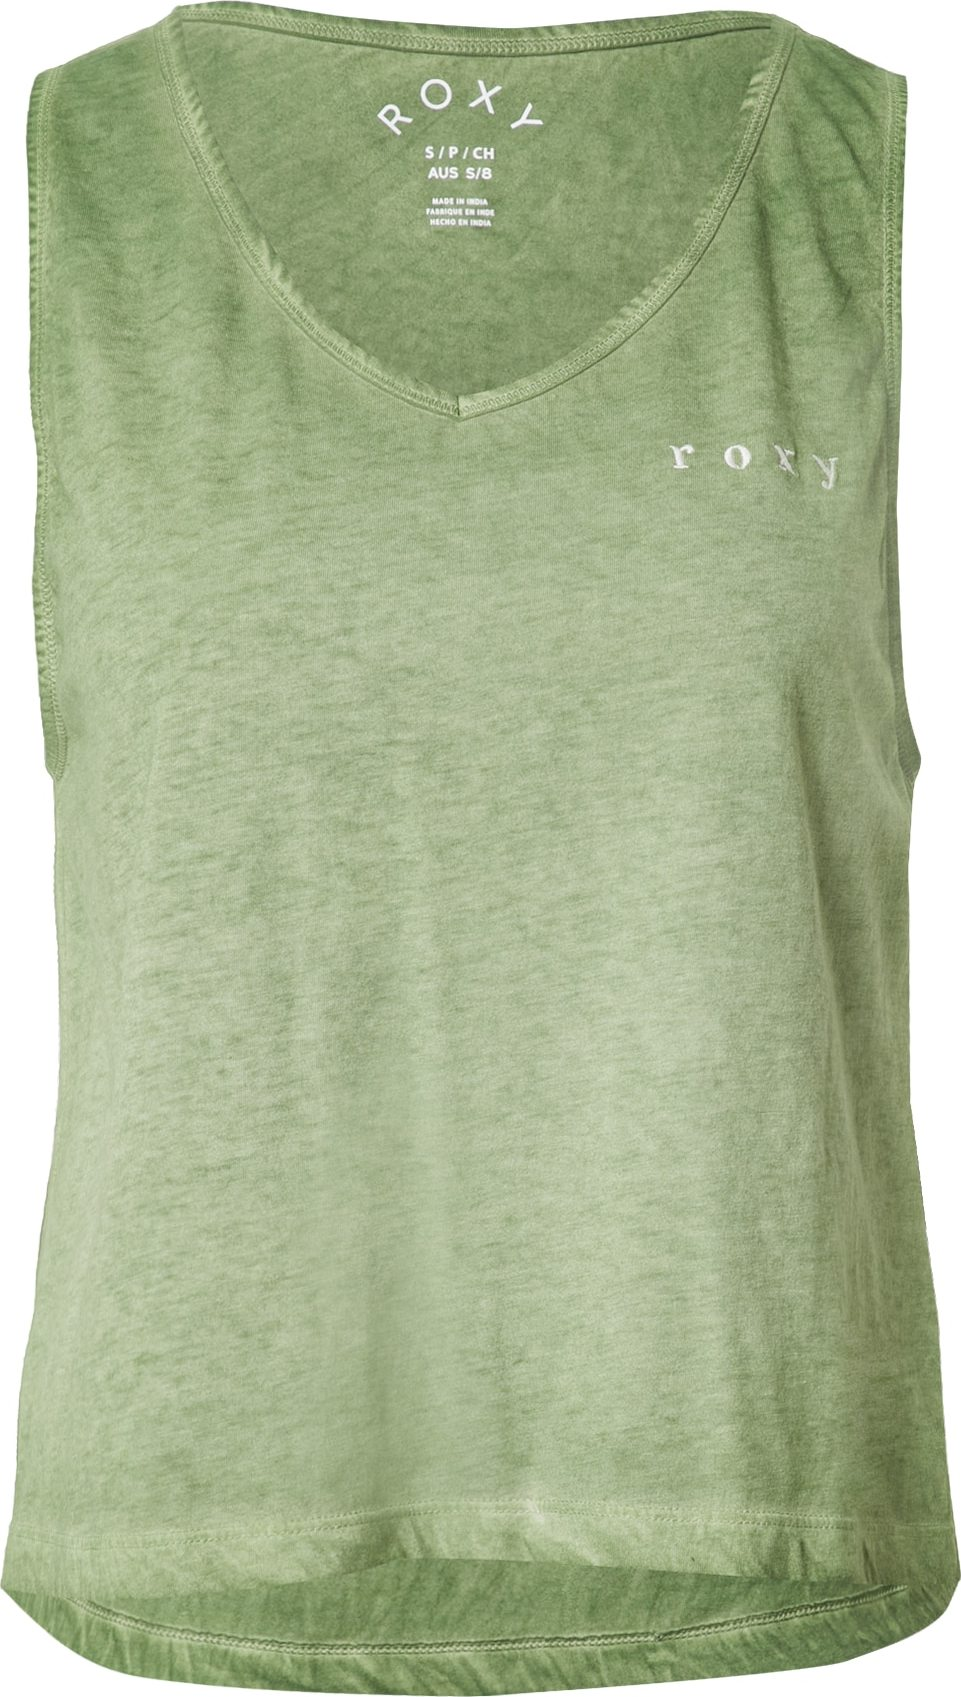 ROXY Top NEED A WAVE khaki bílá Roxy